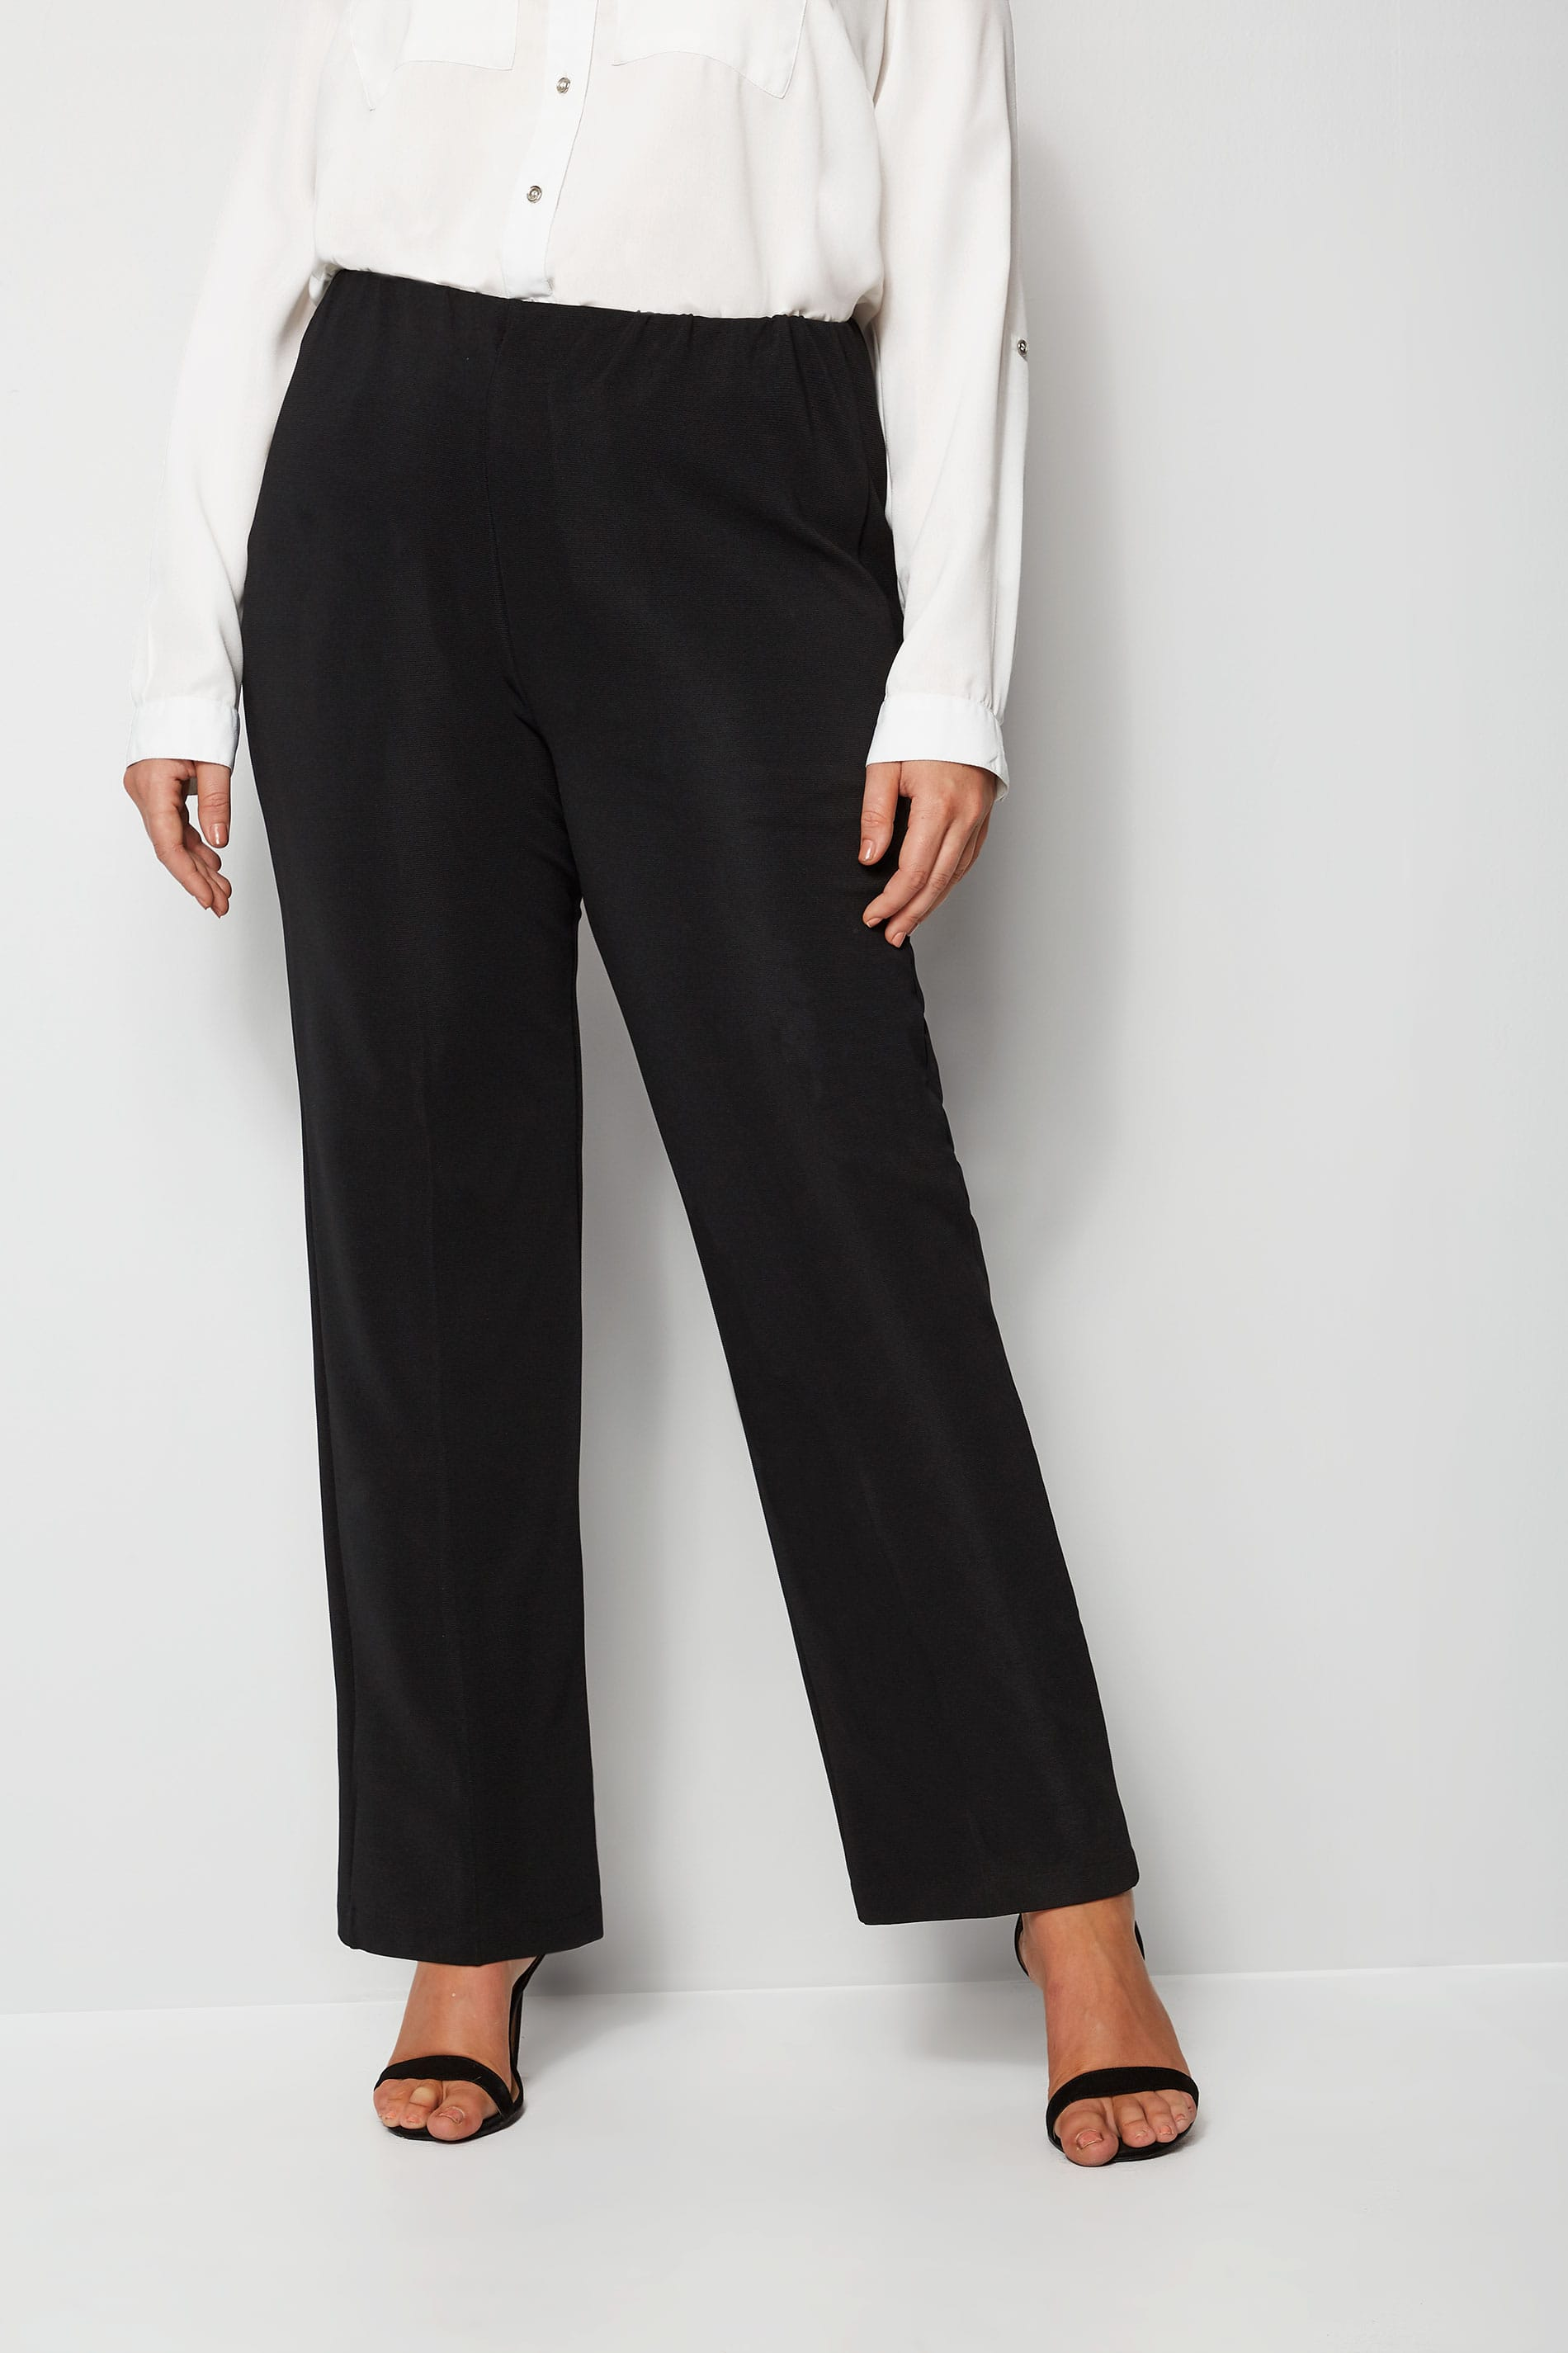 Black Pull On Ribbed Bootcut Trousers Petite Plus Size